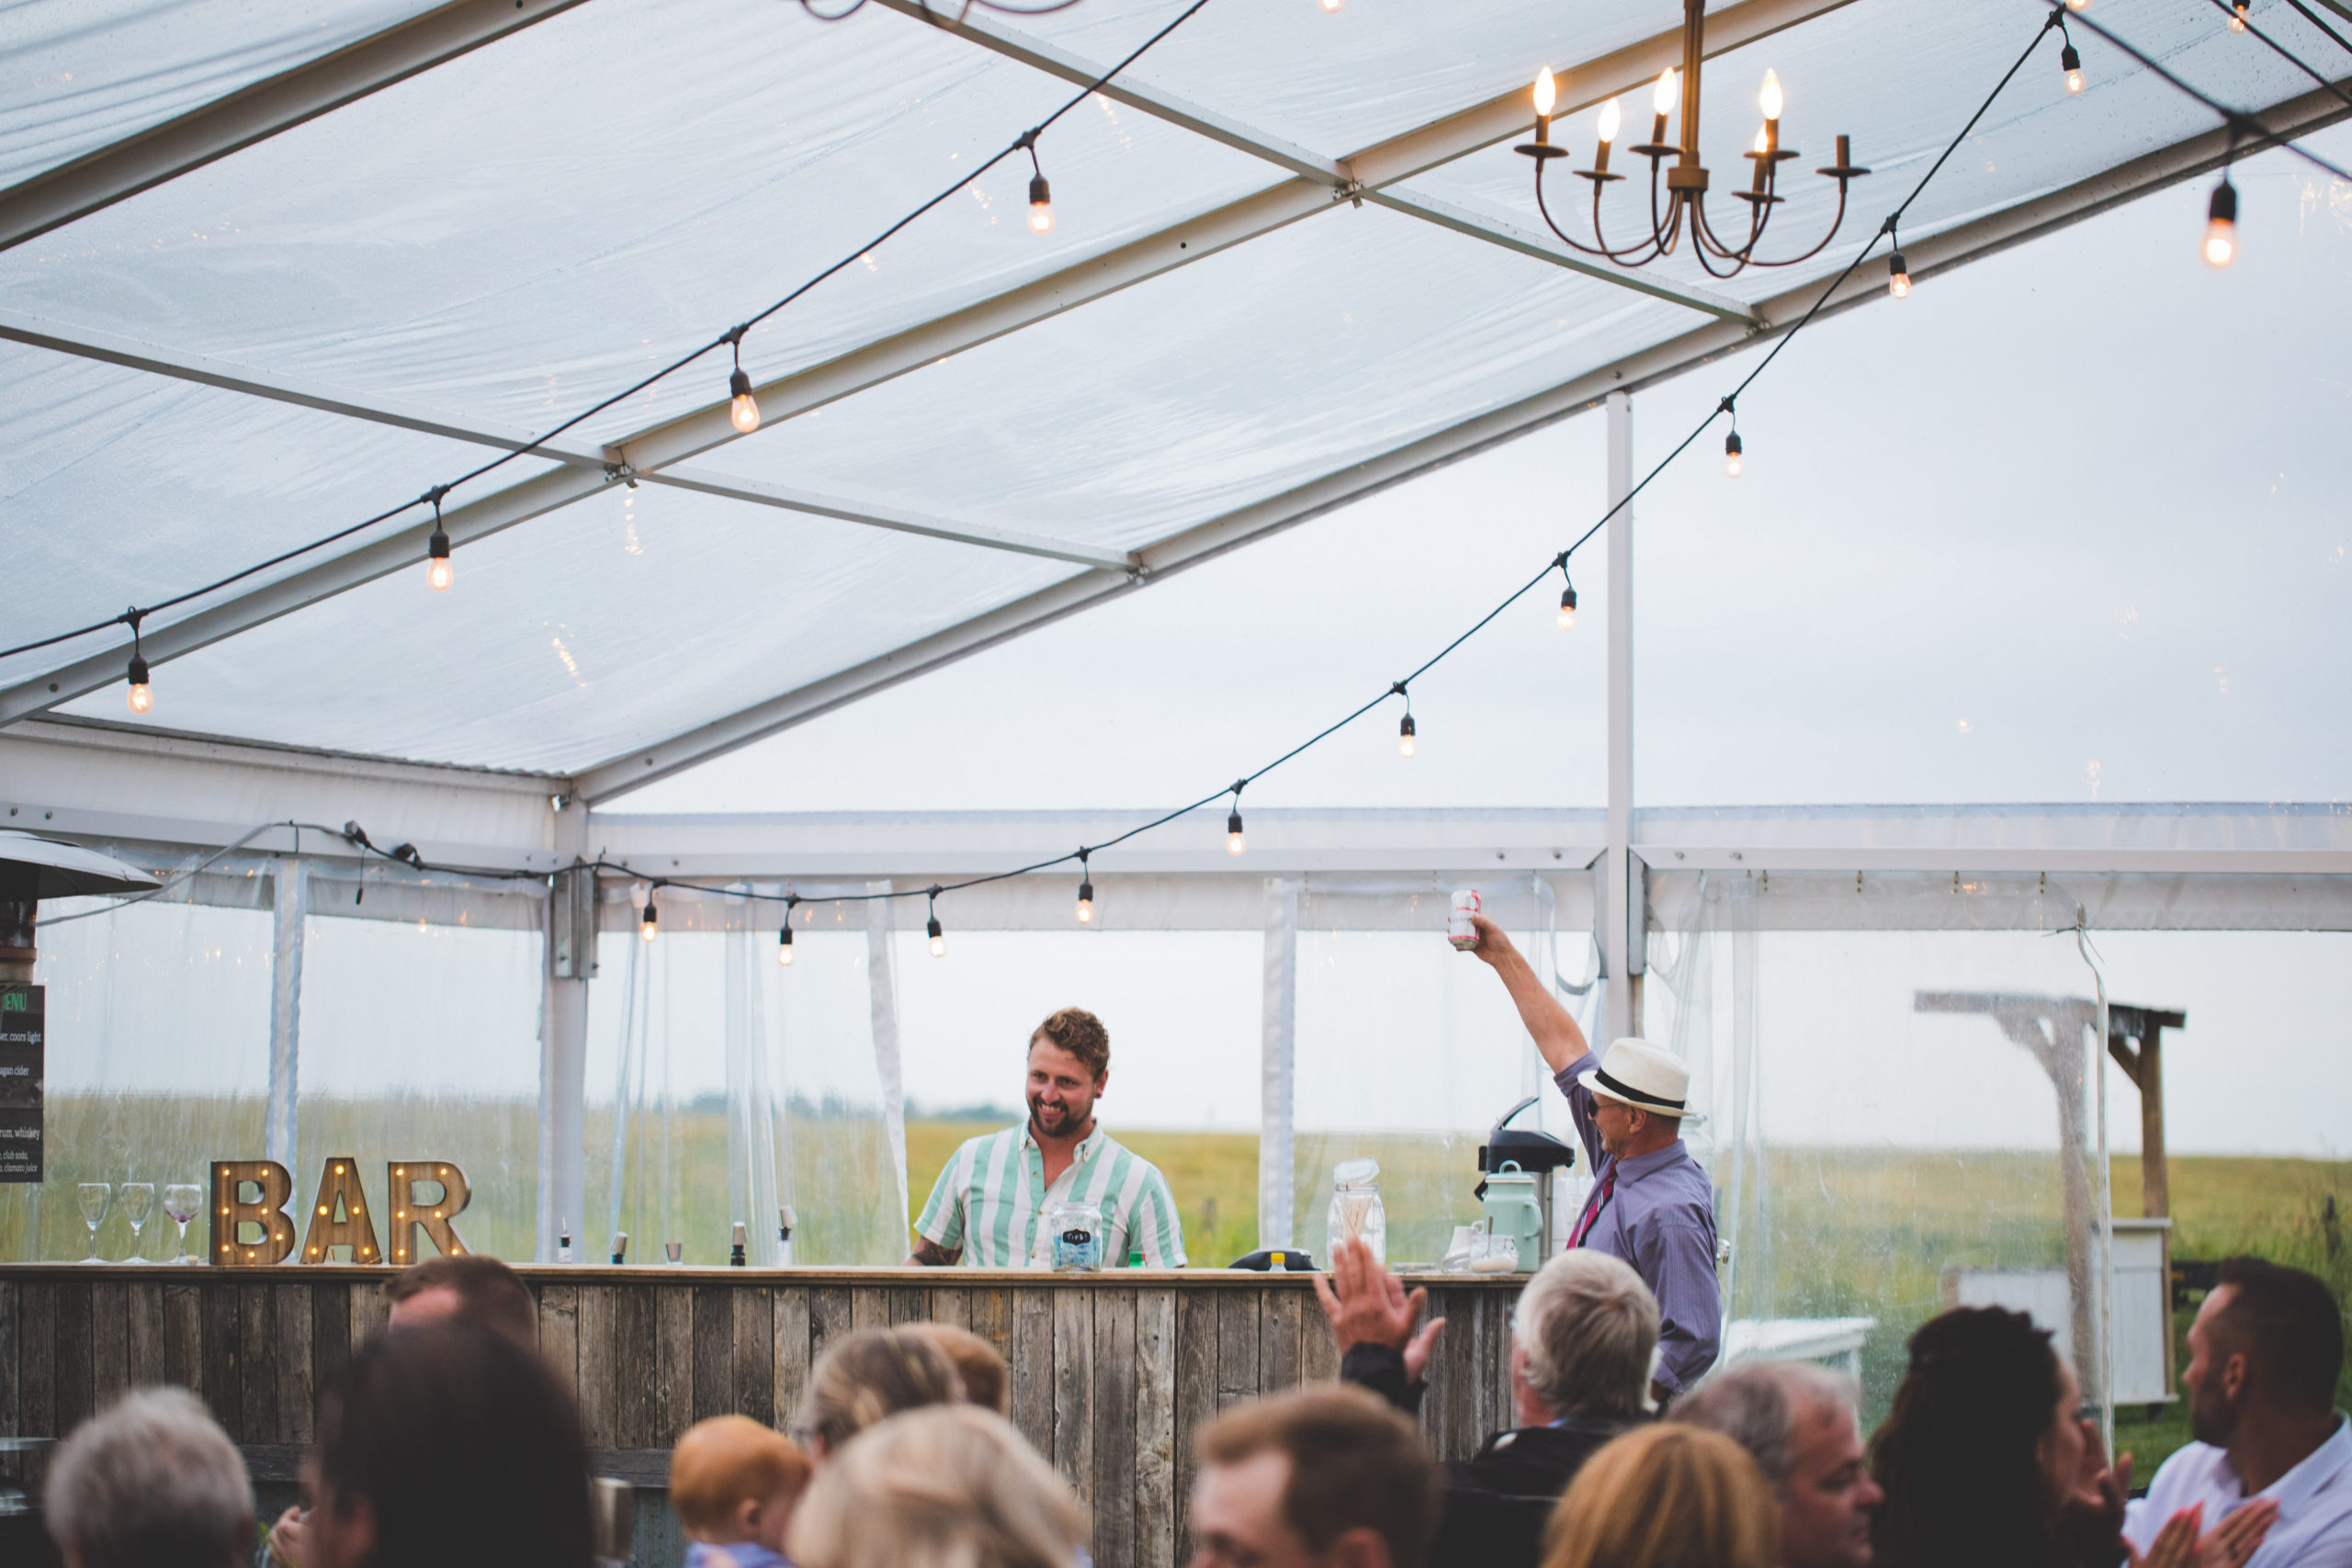 in a clear tent with hanging globe lights wedding guess salute the bartender at this outdoor wedding in the rain.